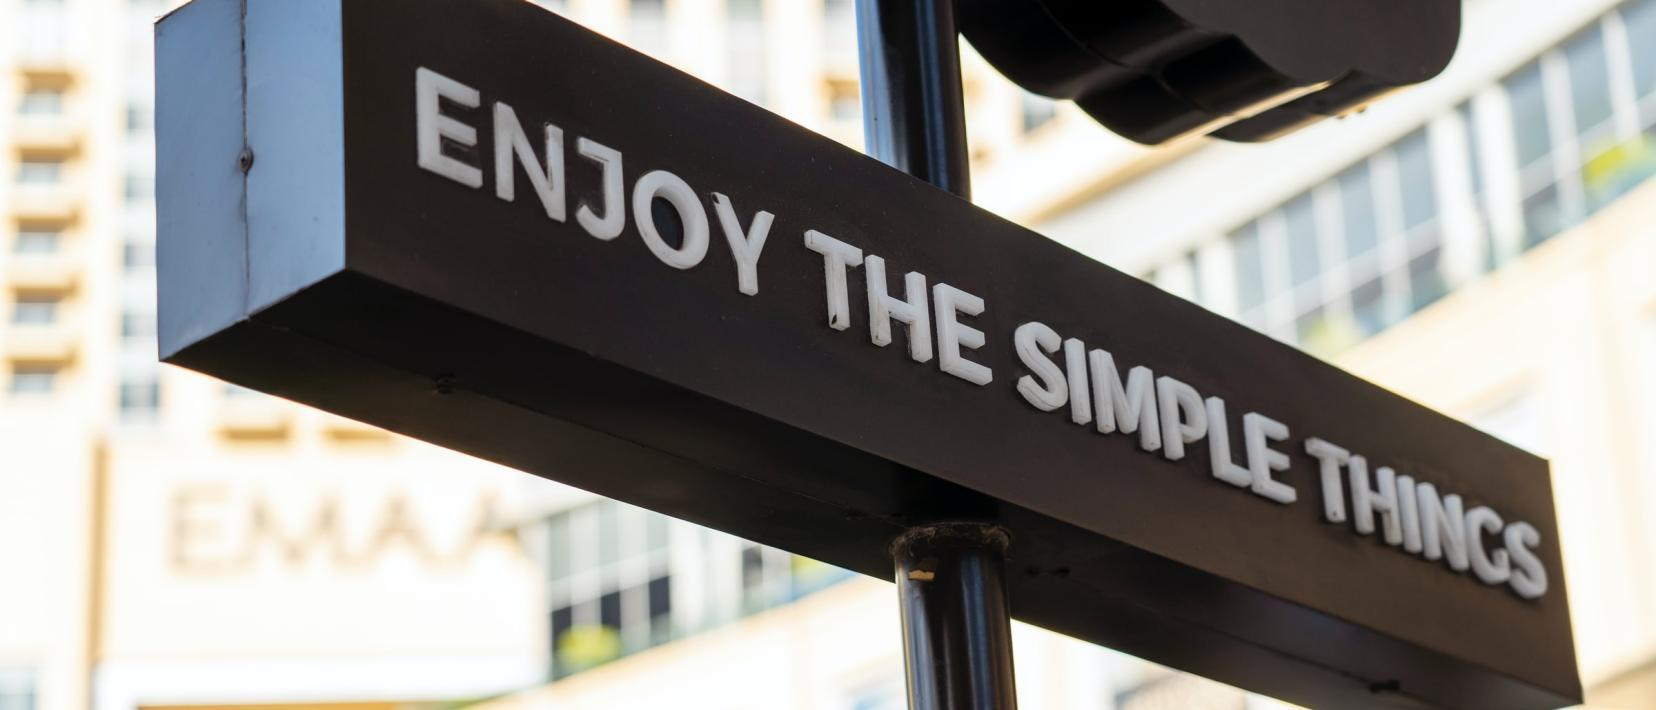 Schild mit der Aufschrift «Enjoy the simple things»